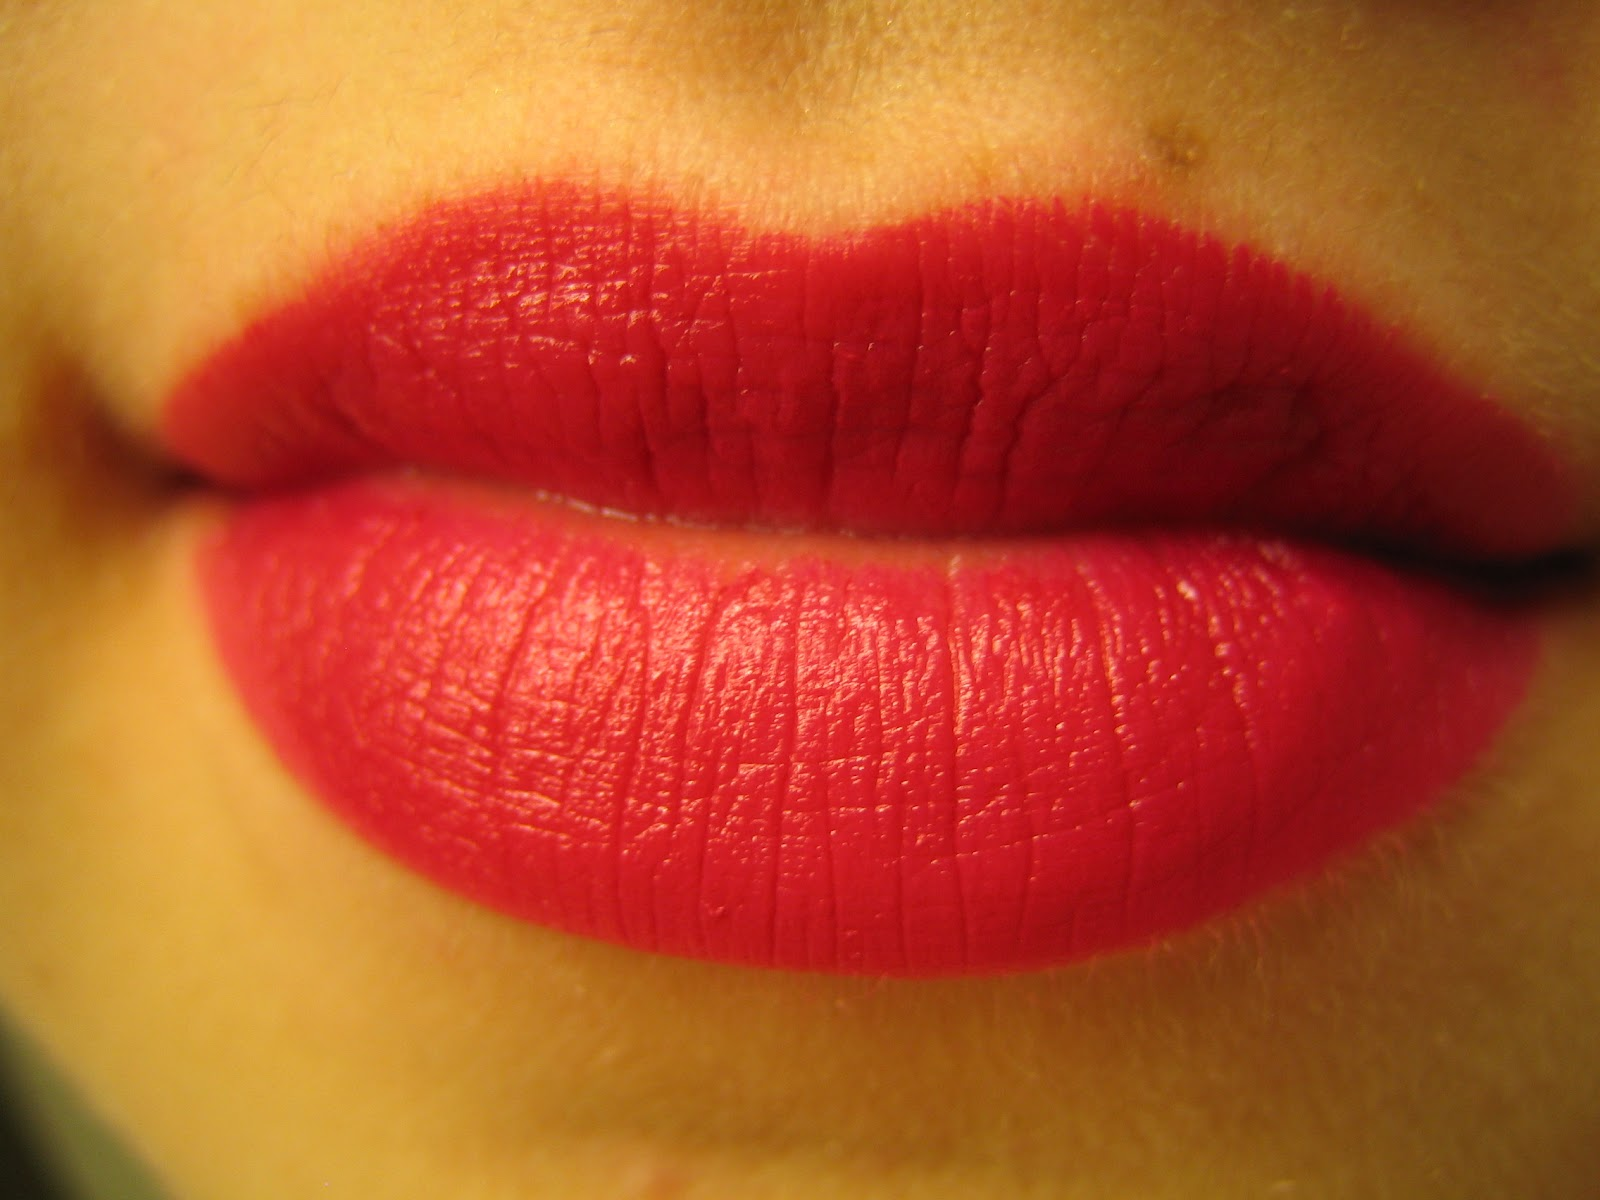 bower of blisse wet n wild mega last lipstick in cherry